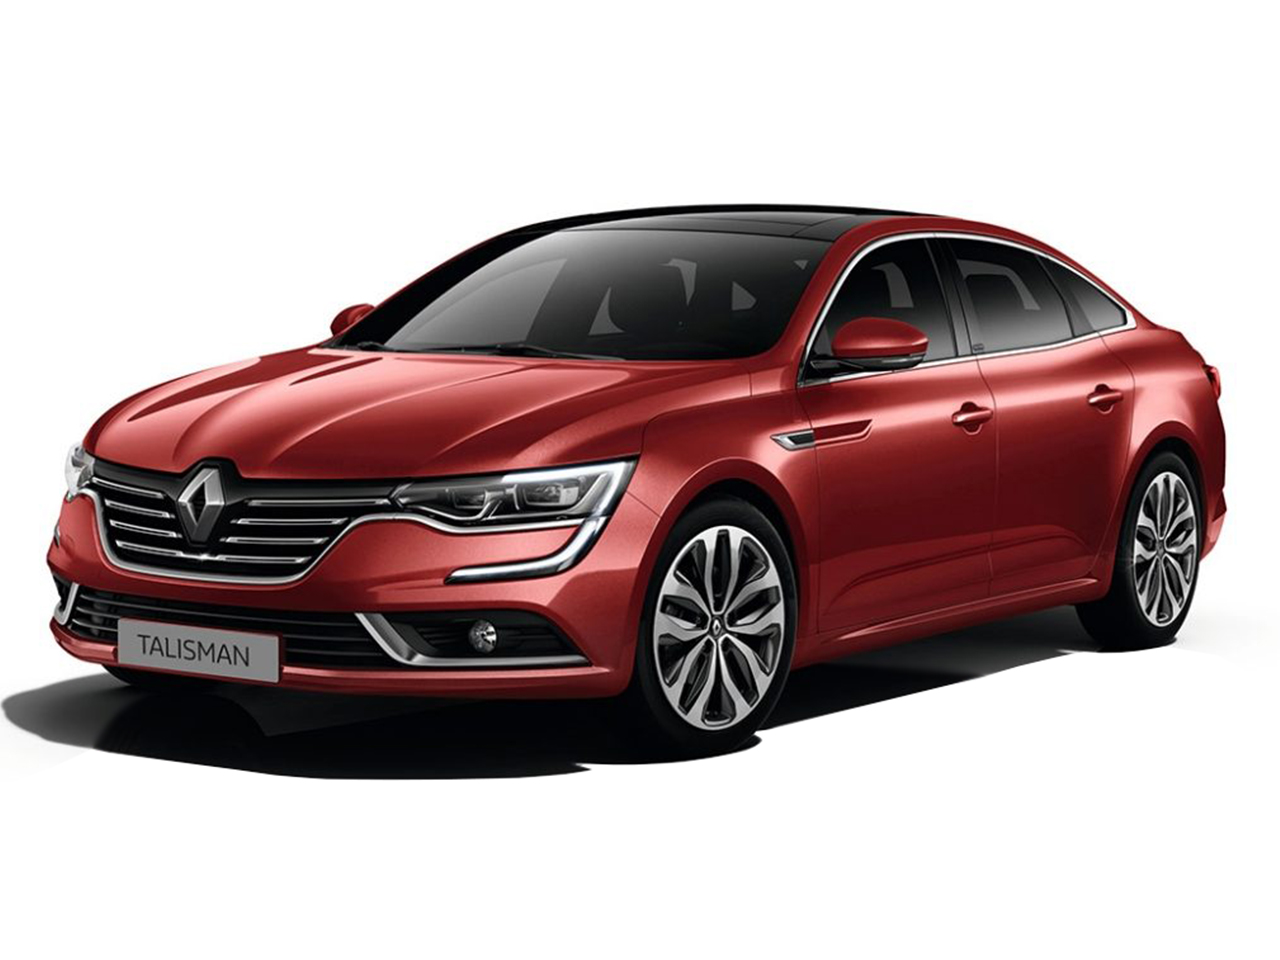 2018 renault talisman prices in uae gulf specs reviews for dubai abu dhabi and sharjah. Black Bedroom Furniture Sets. Home Design Ideas